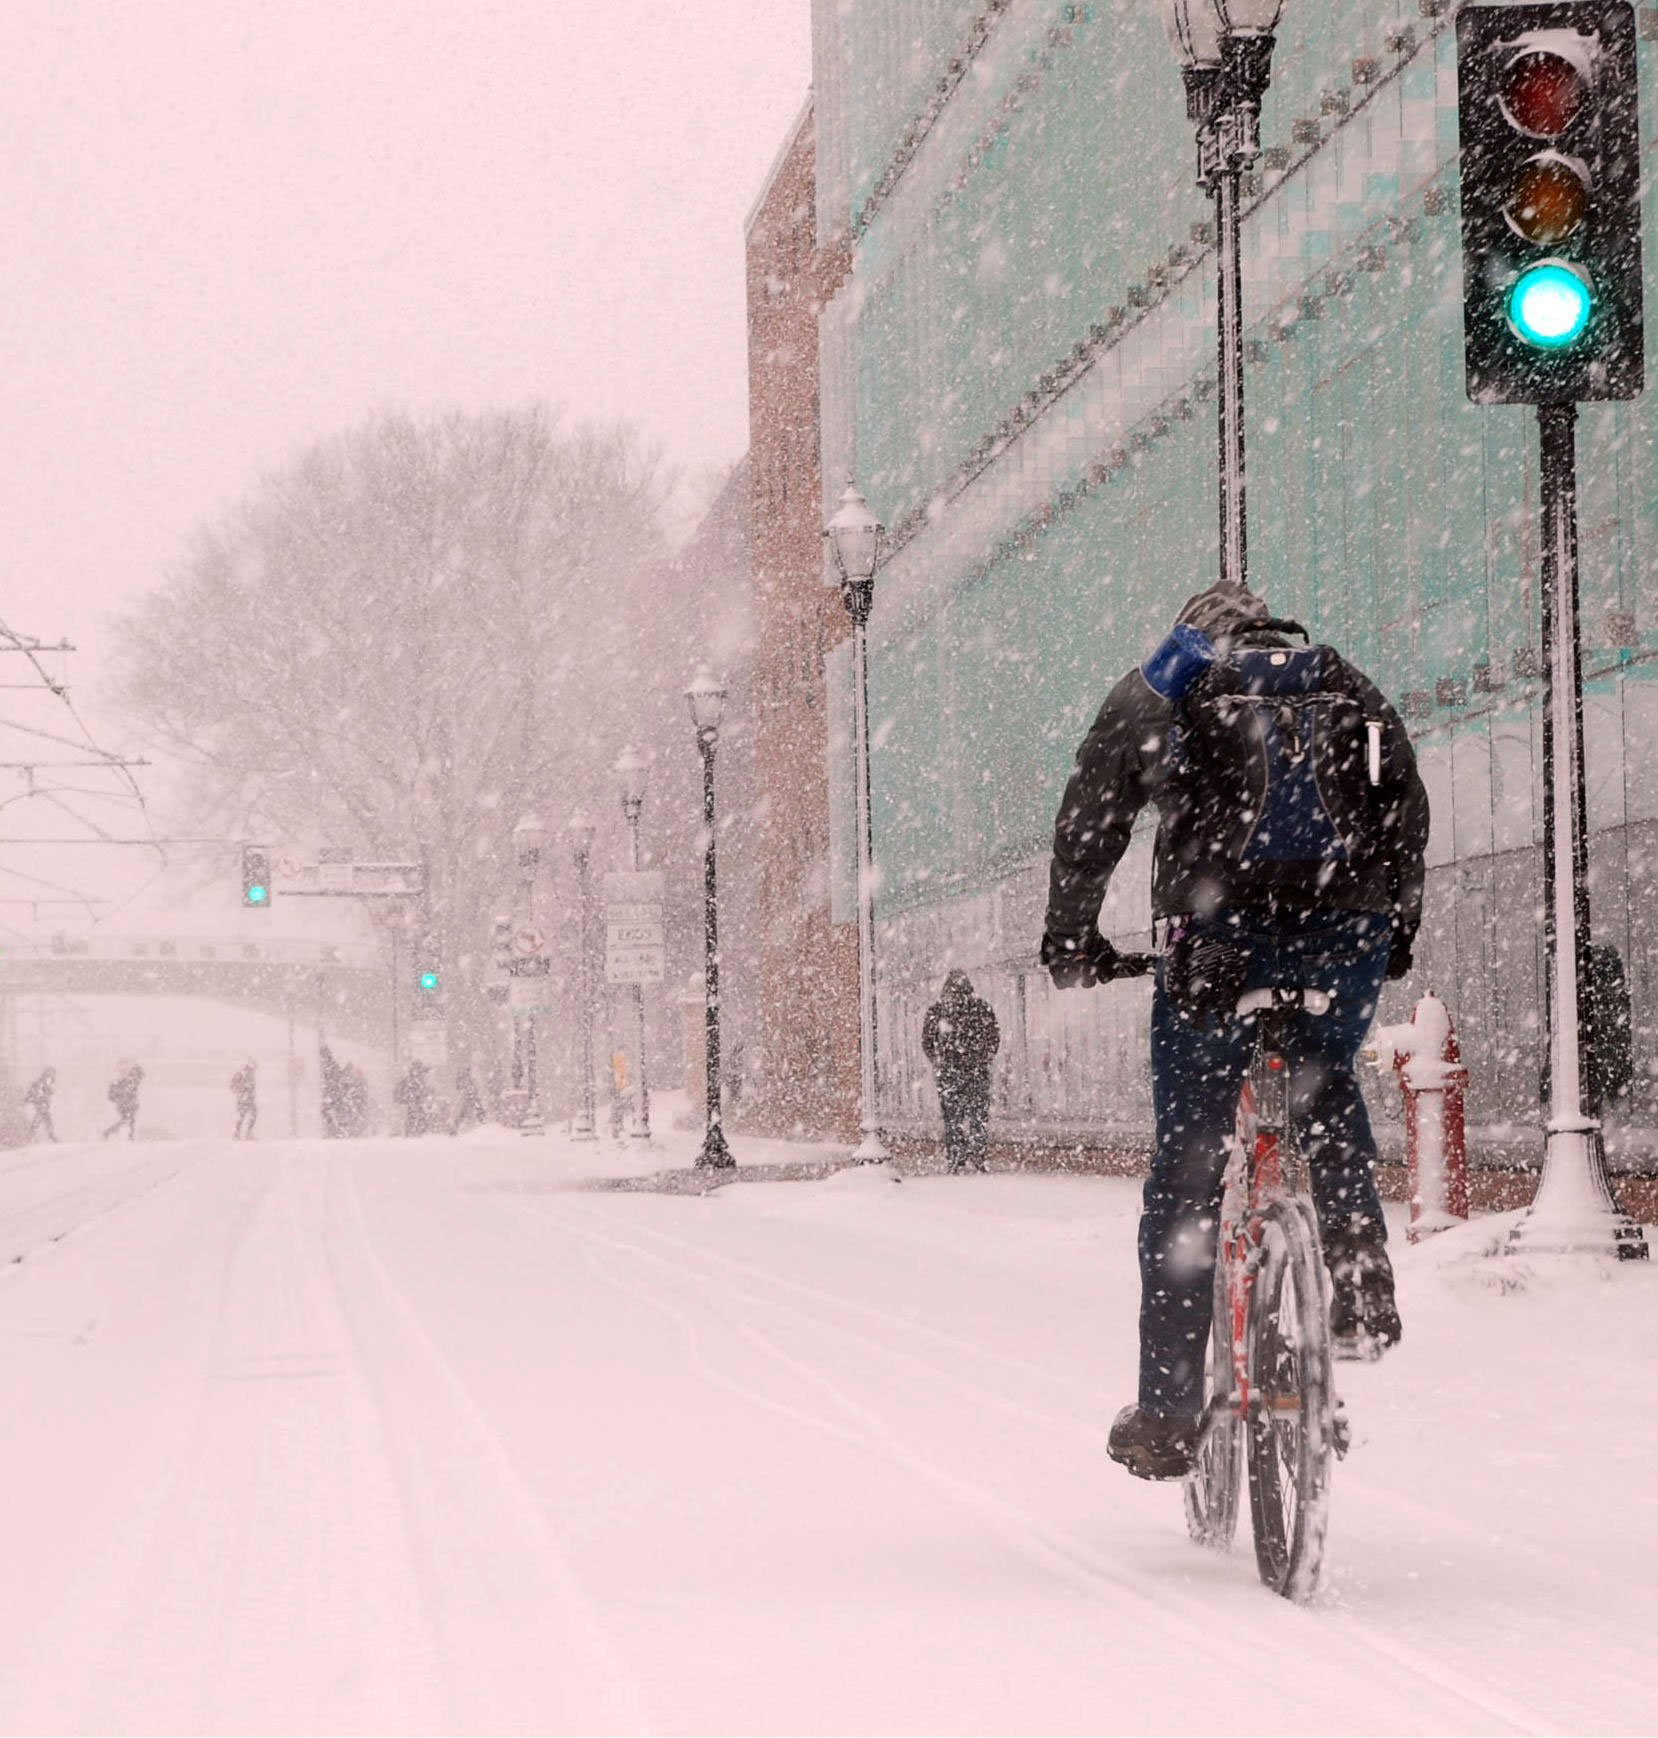 urban-biking-in-snow